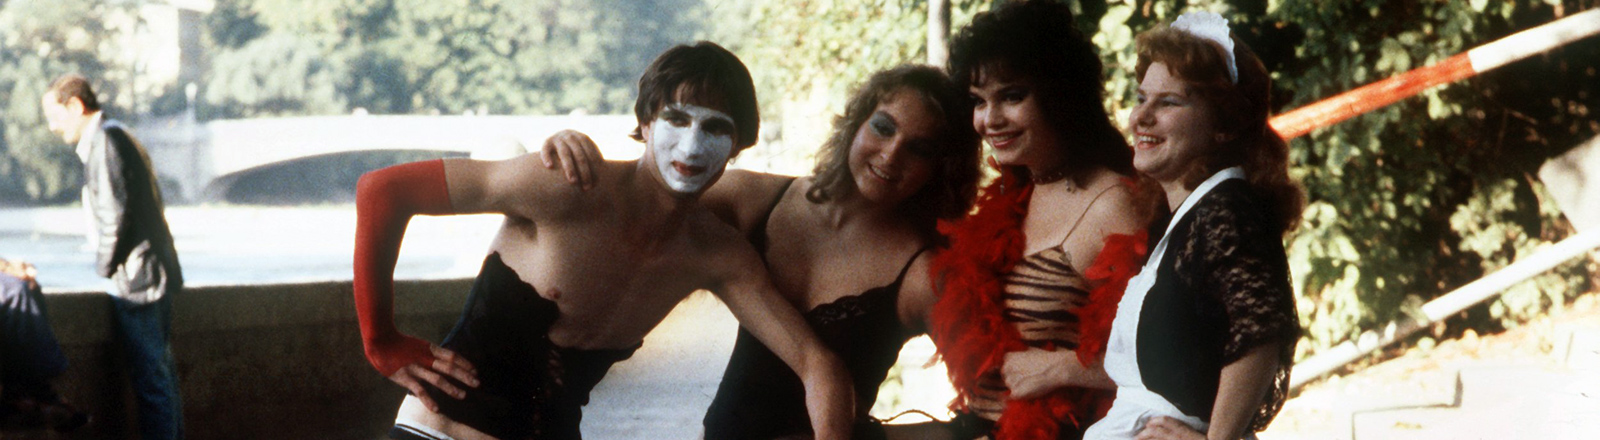 "Fans des Kultfilms ""The Rocky Horror Picture Show"" spielen den Film nach."